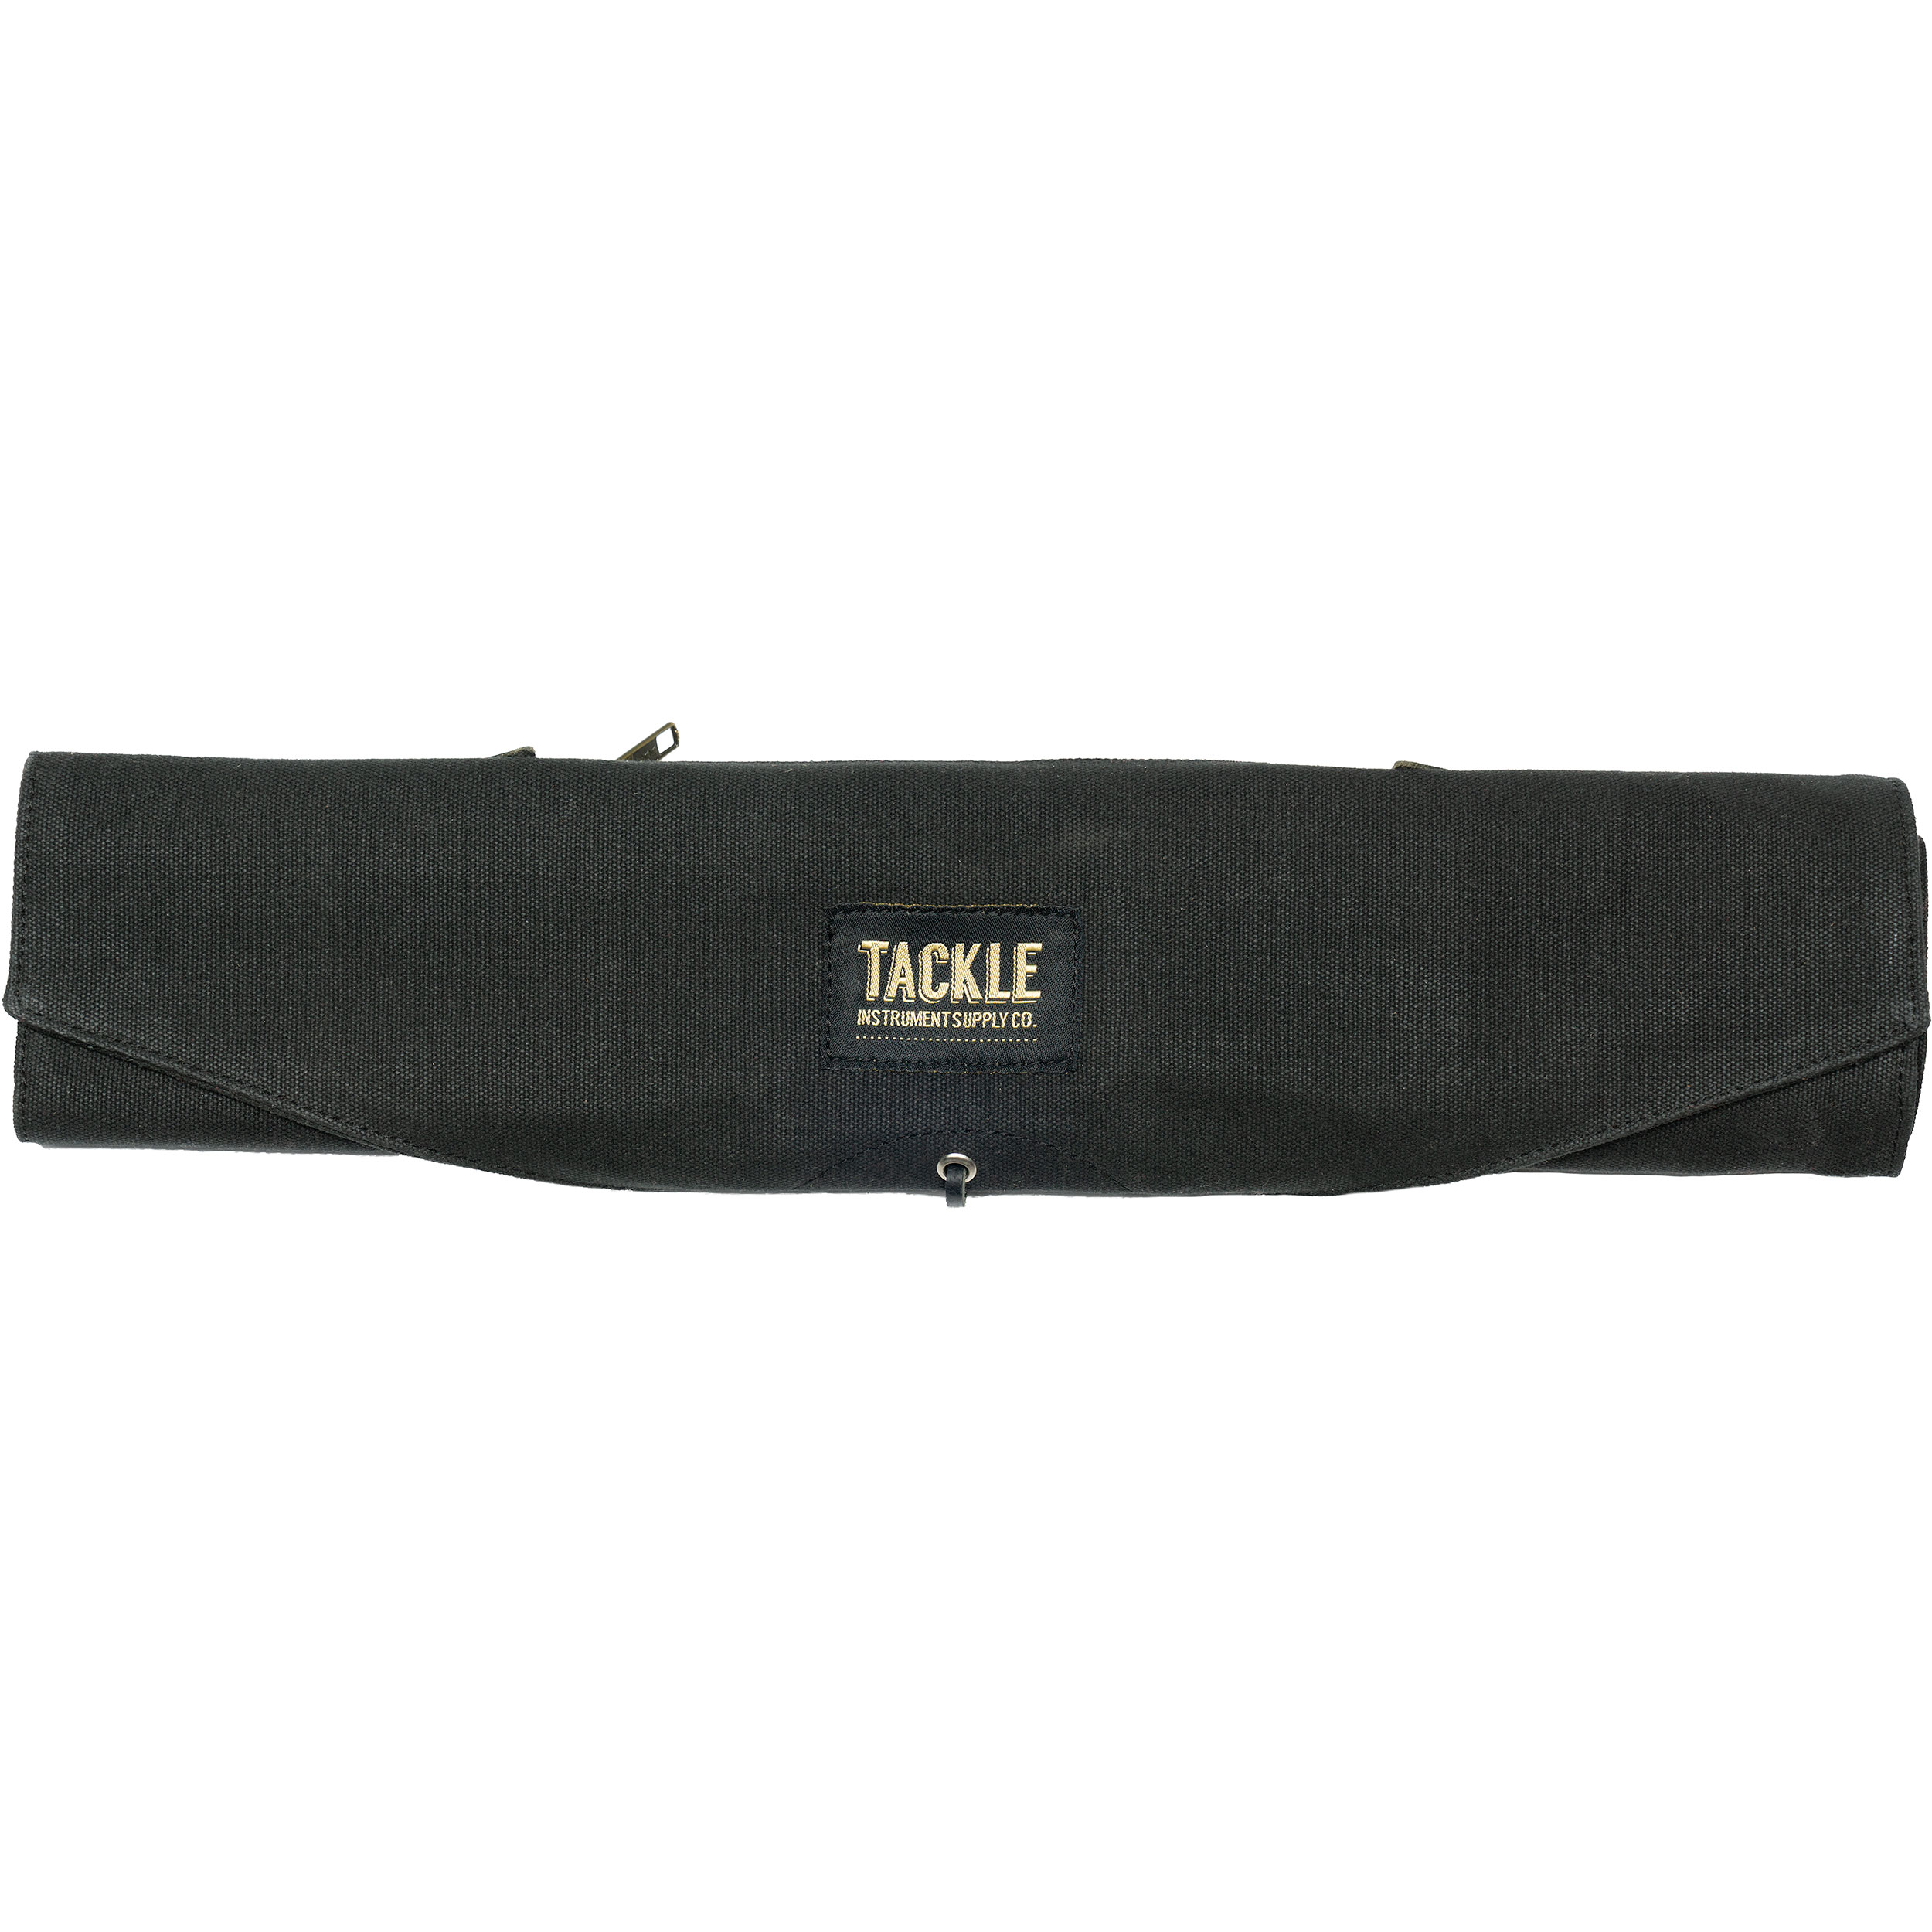 Tackle Instrument Supply Co. Black Waxed Canvas Roll Up Stick Bag